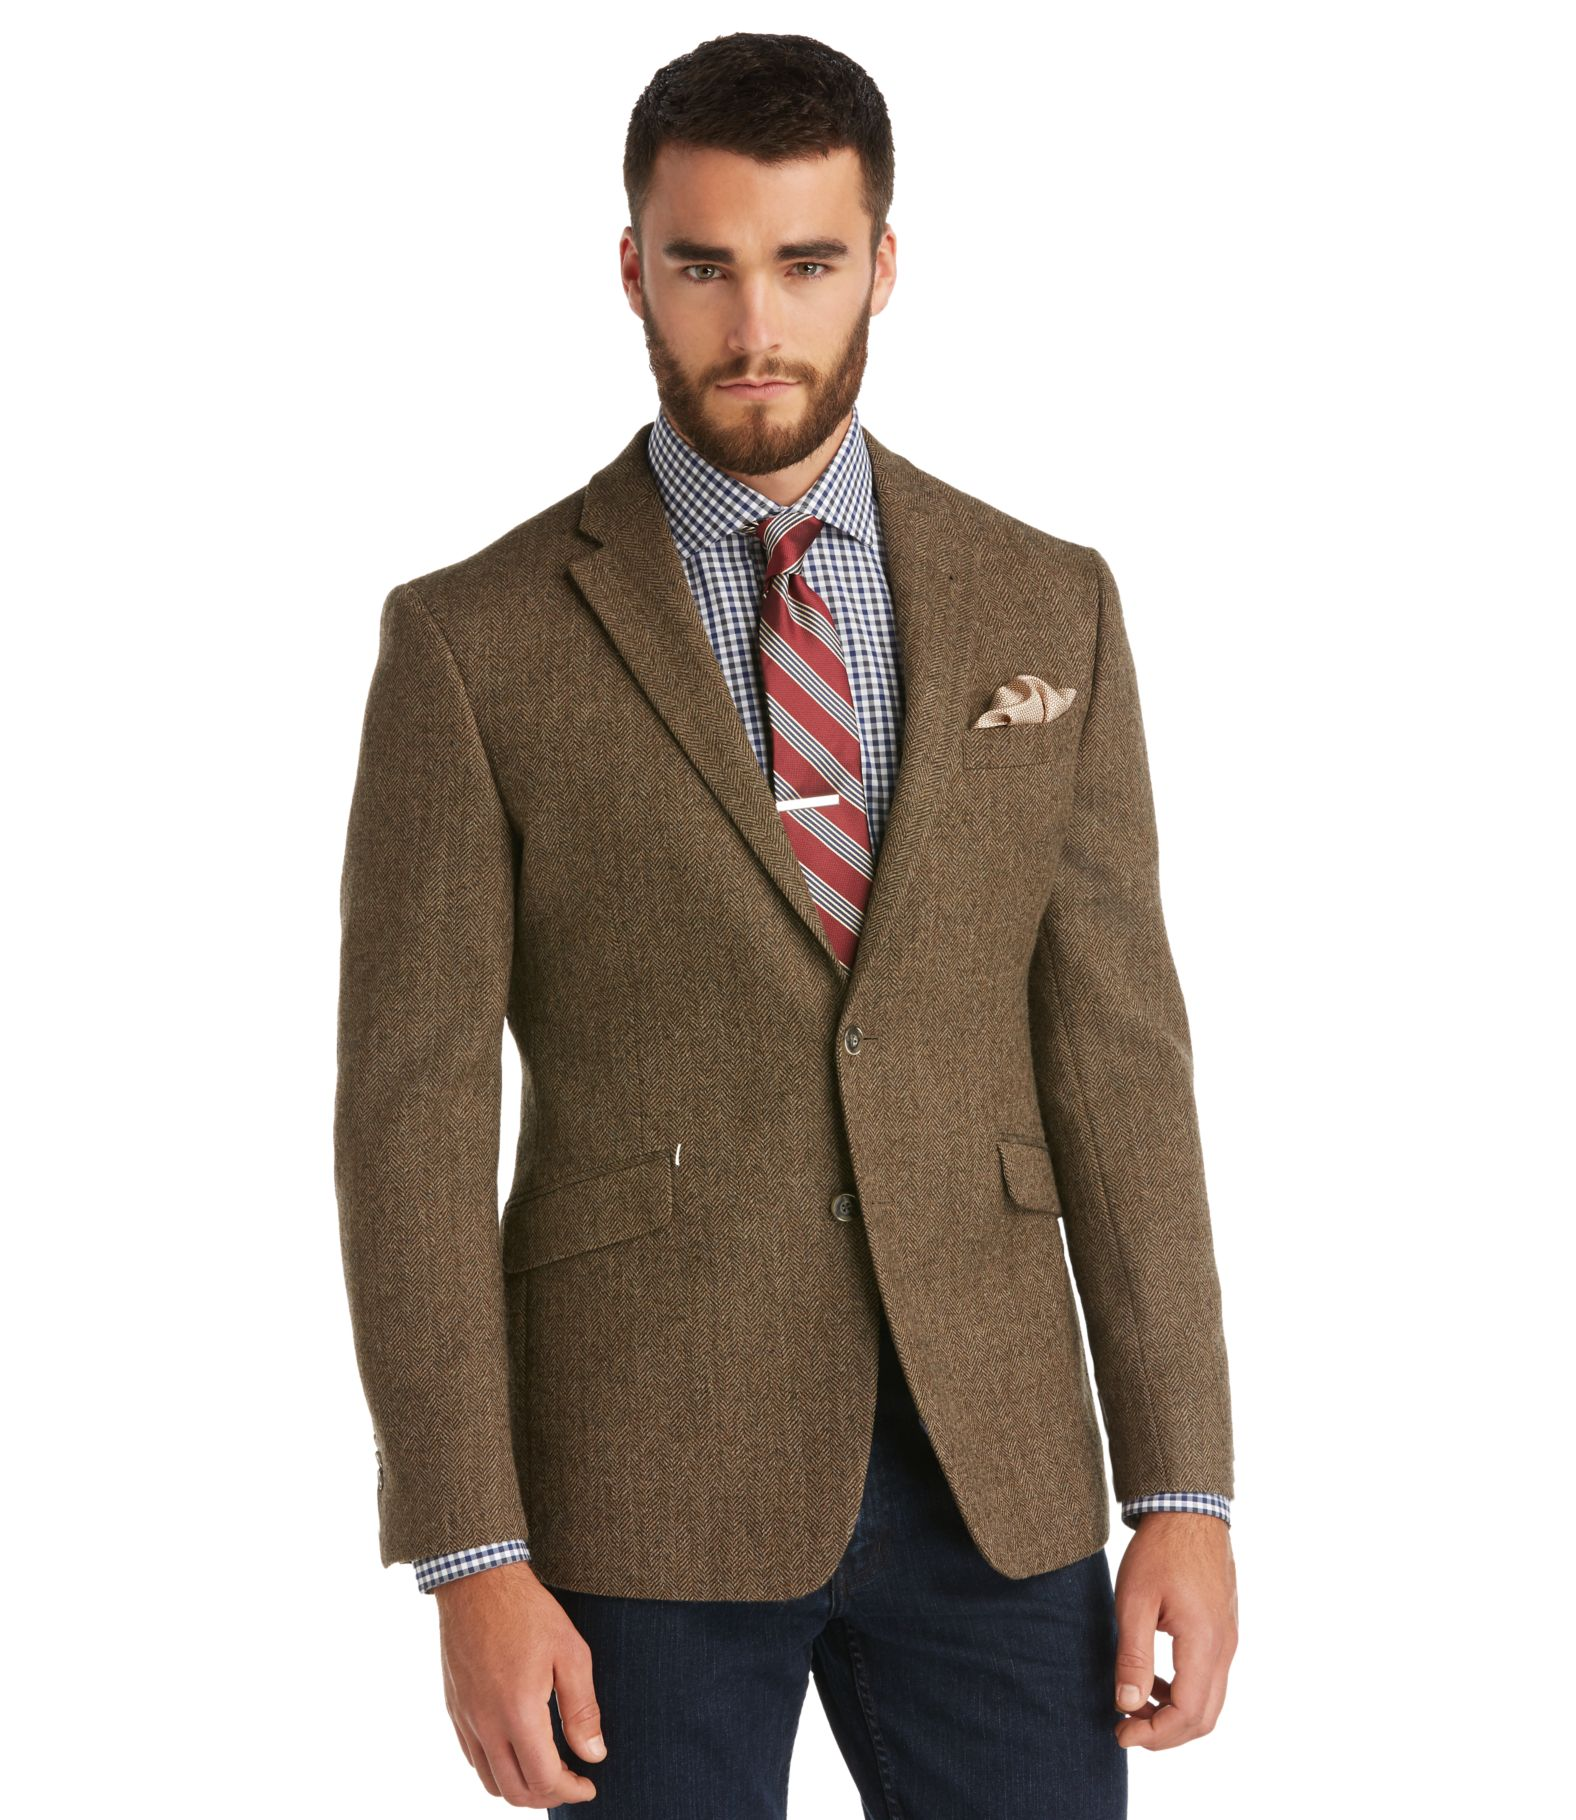 1905 Collection Tailored Fit Herringbone Sportcoat CLEARANCE ...